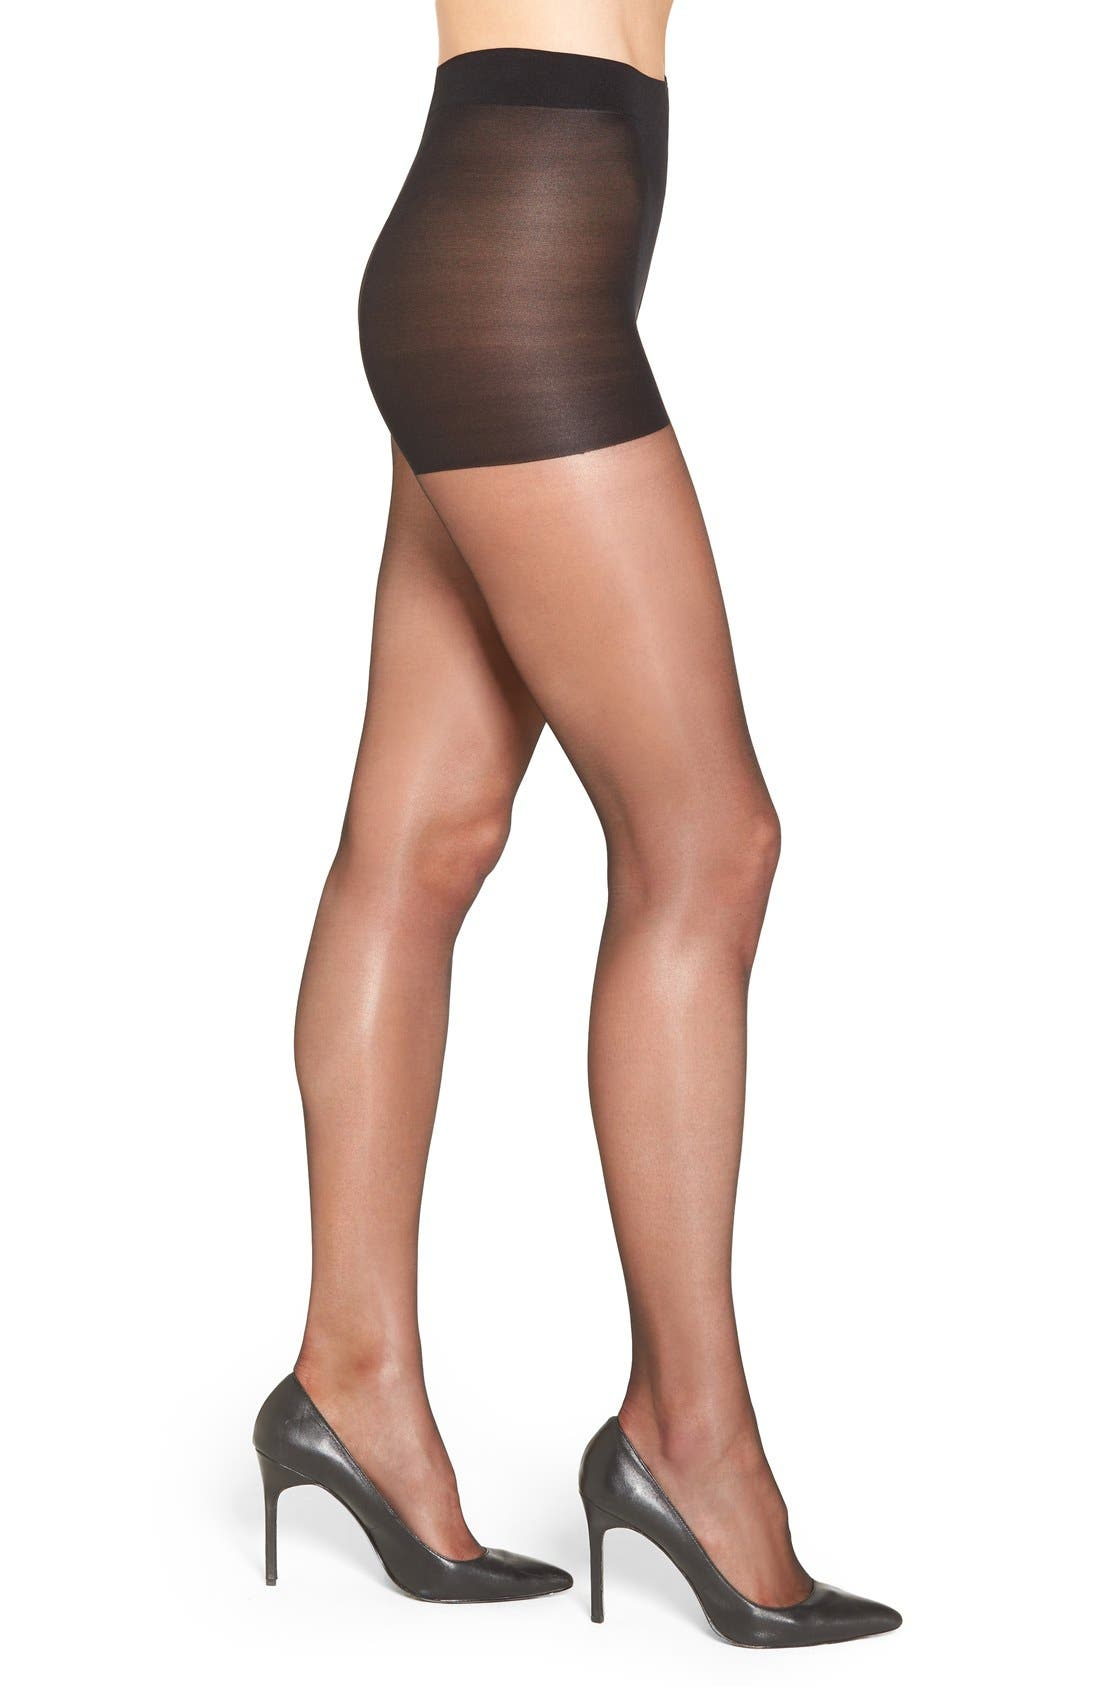 Main Image - Nordstrom 'Gloss' Control Top Pantyhose (3 for $36)